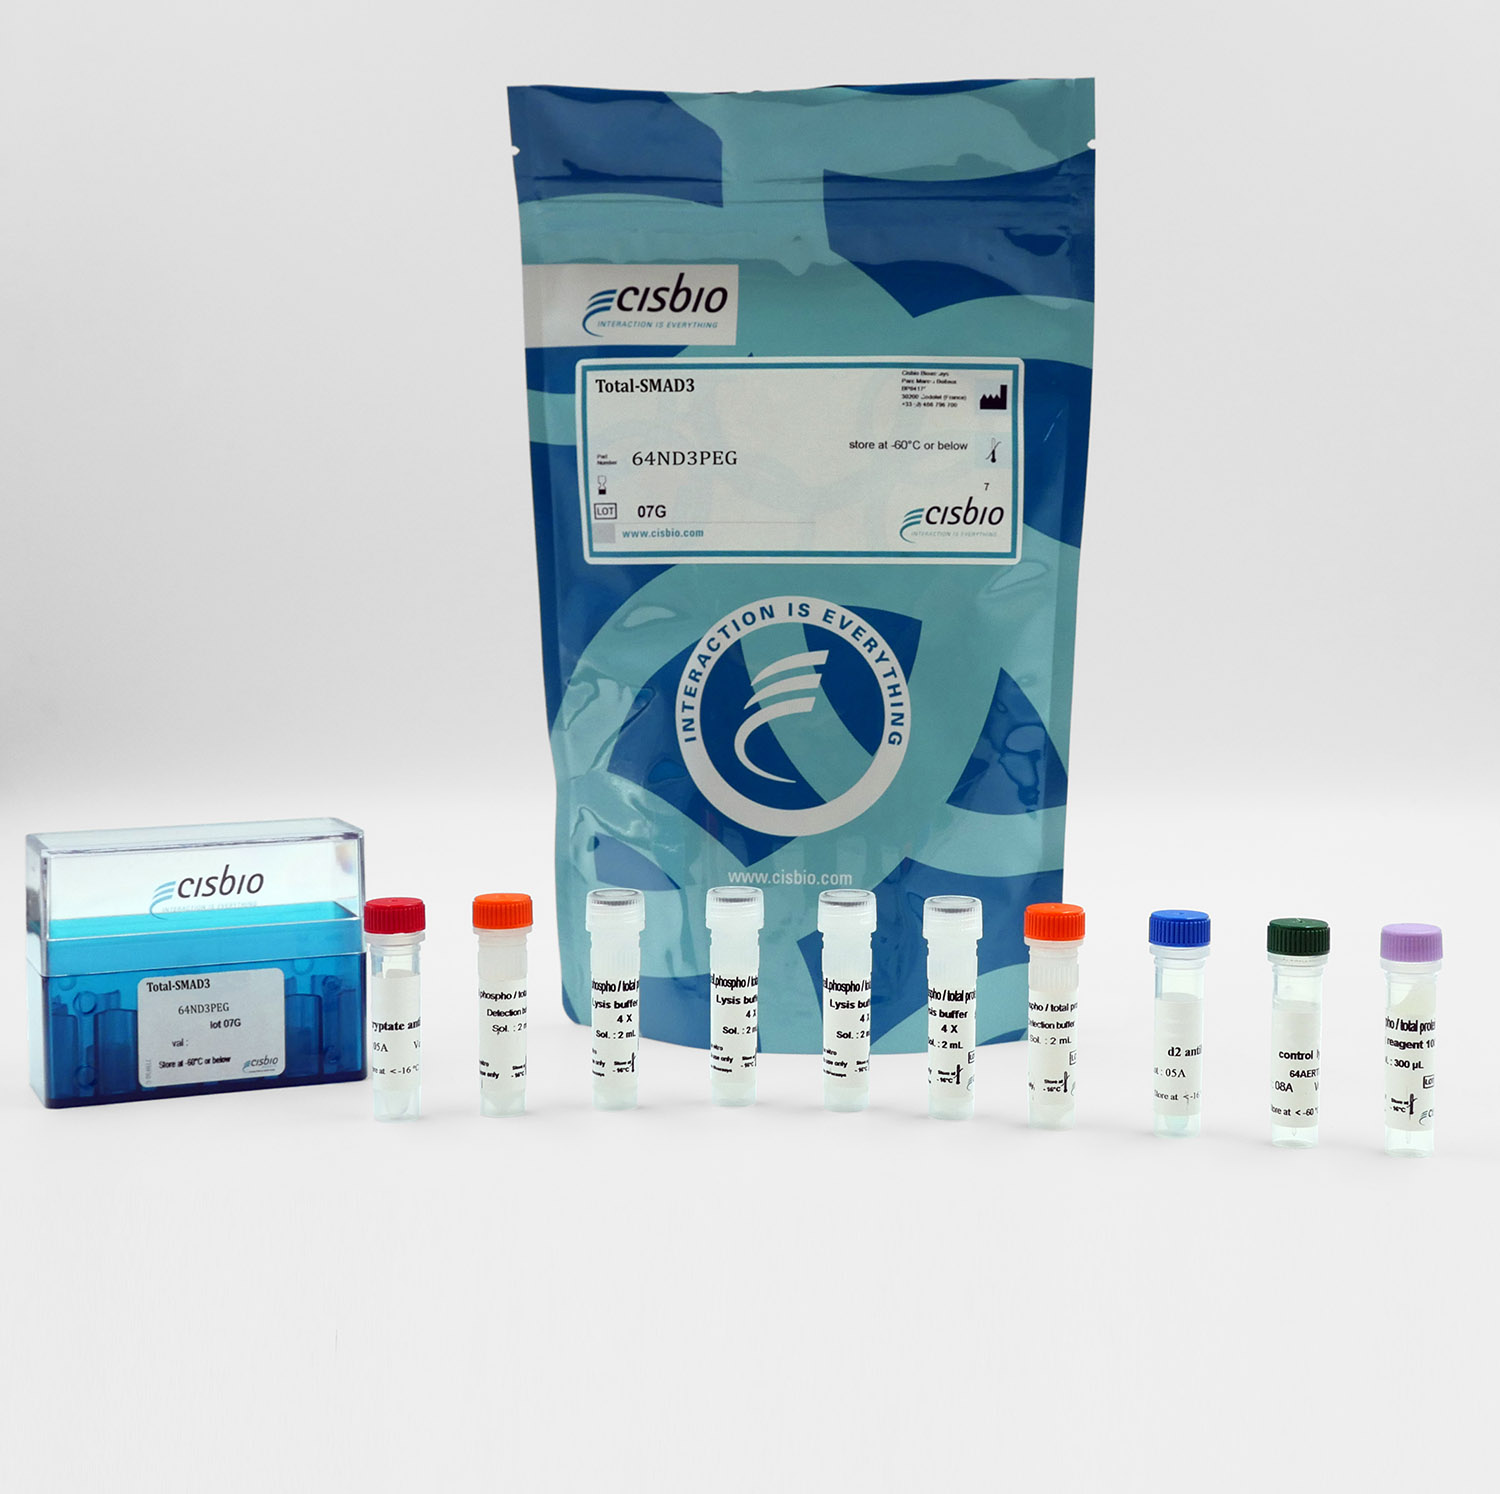 Total SMAD3 cellular kit